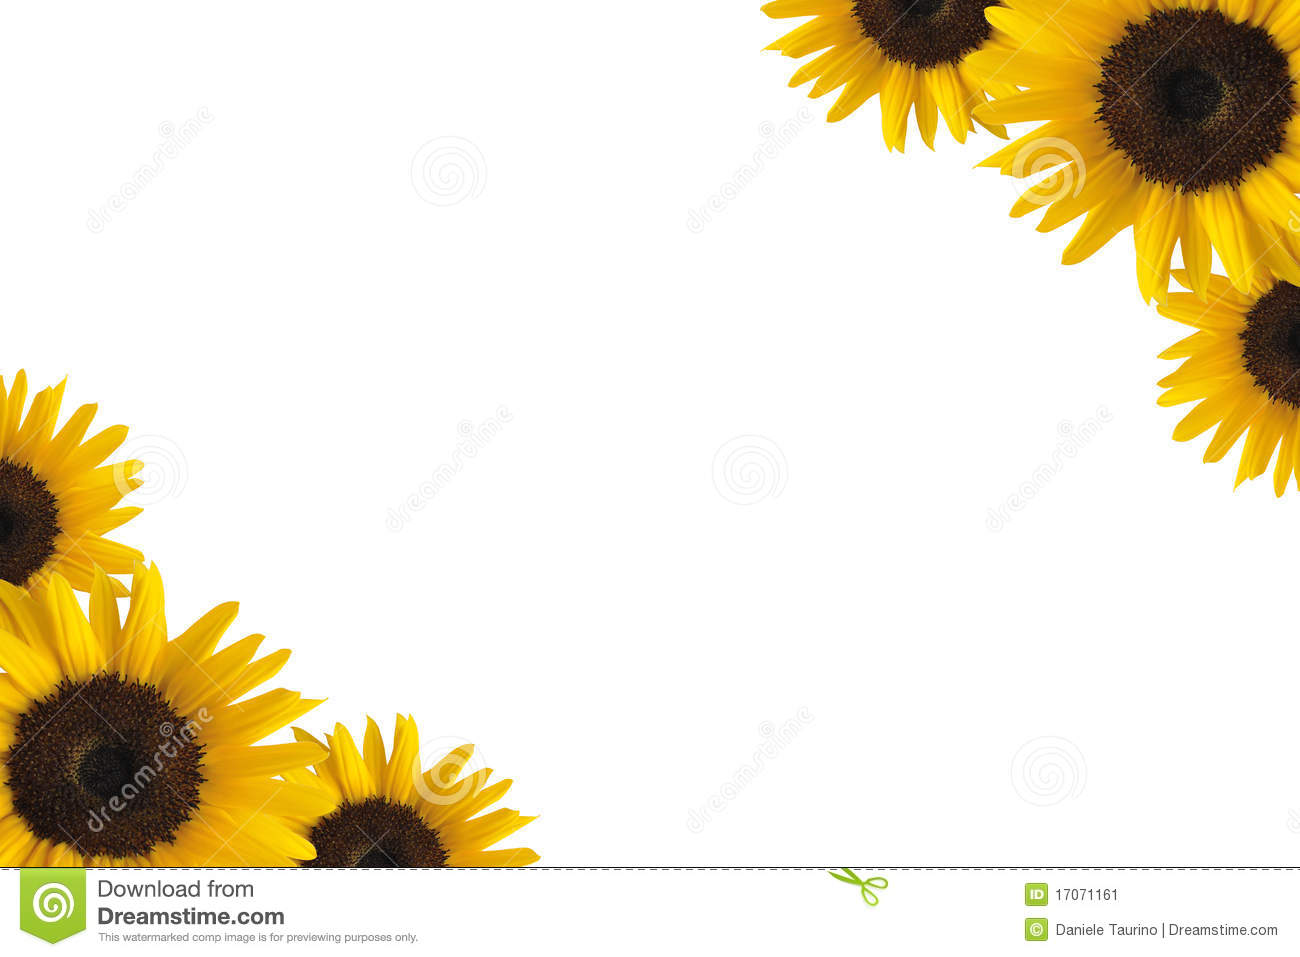 Sunflower border